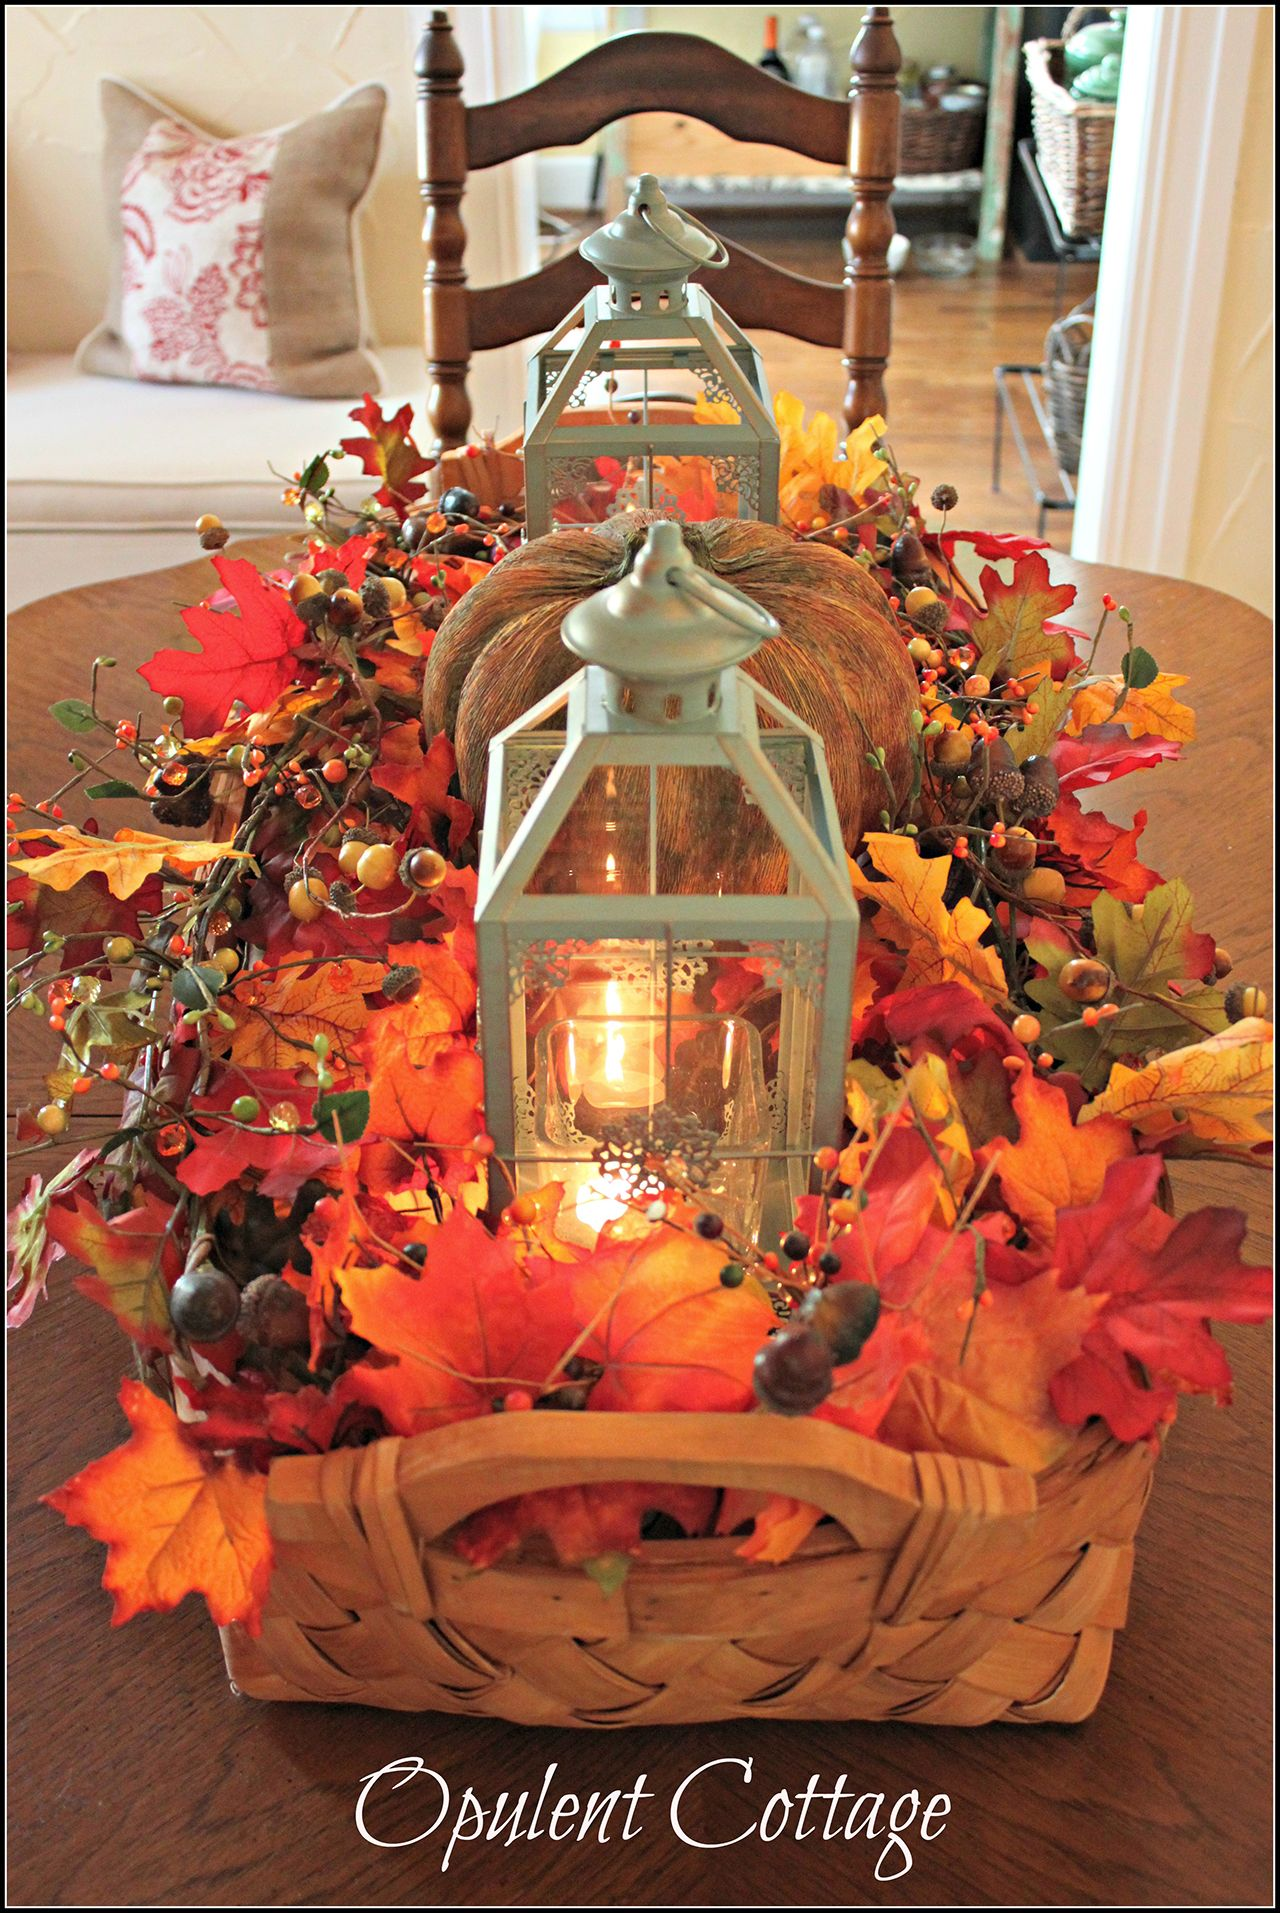 27 diy fall centerpiece ideas to pumpkin spice up your Thanksgiving table decorations homemade